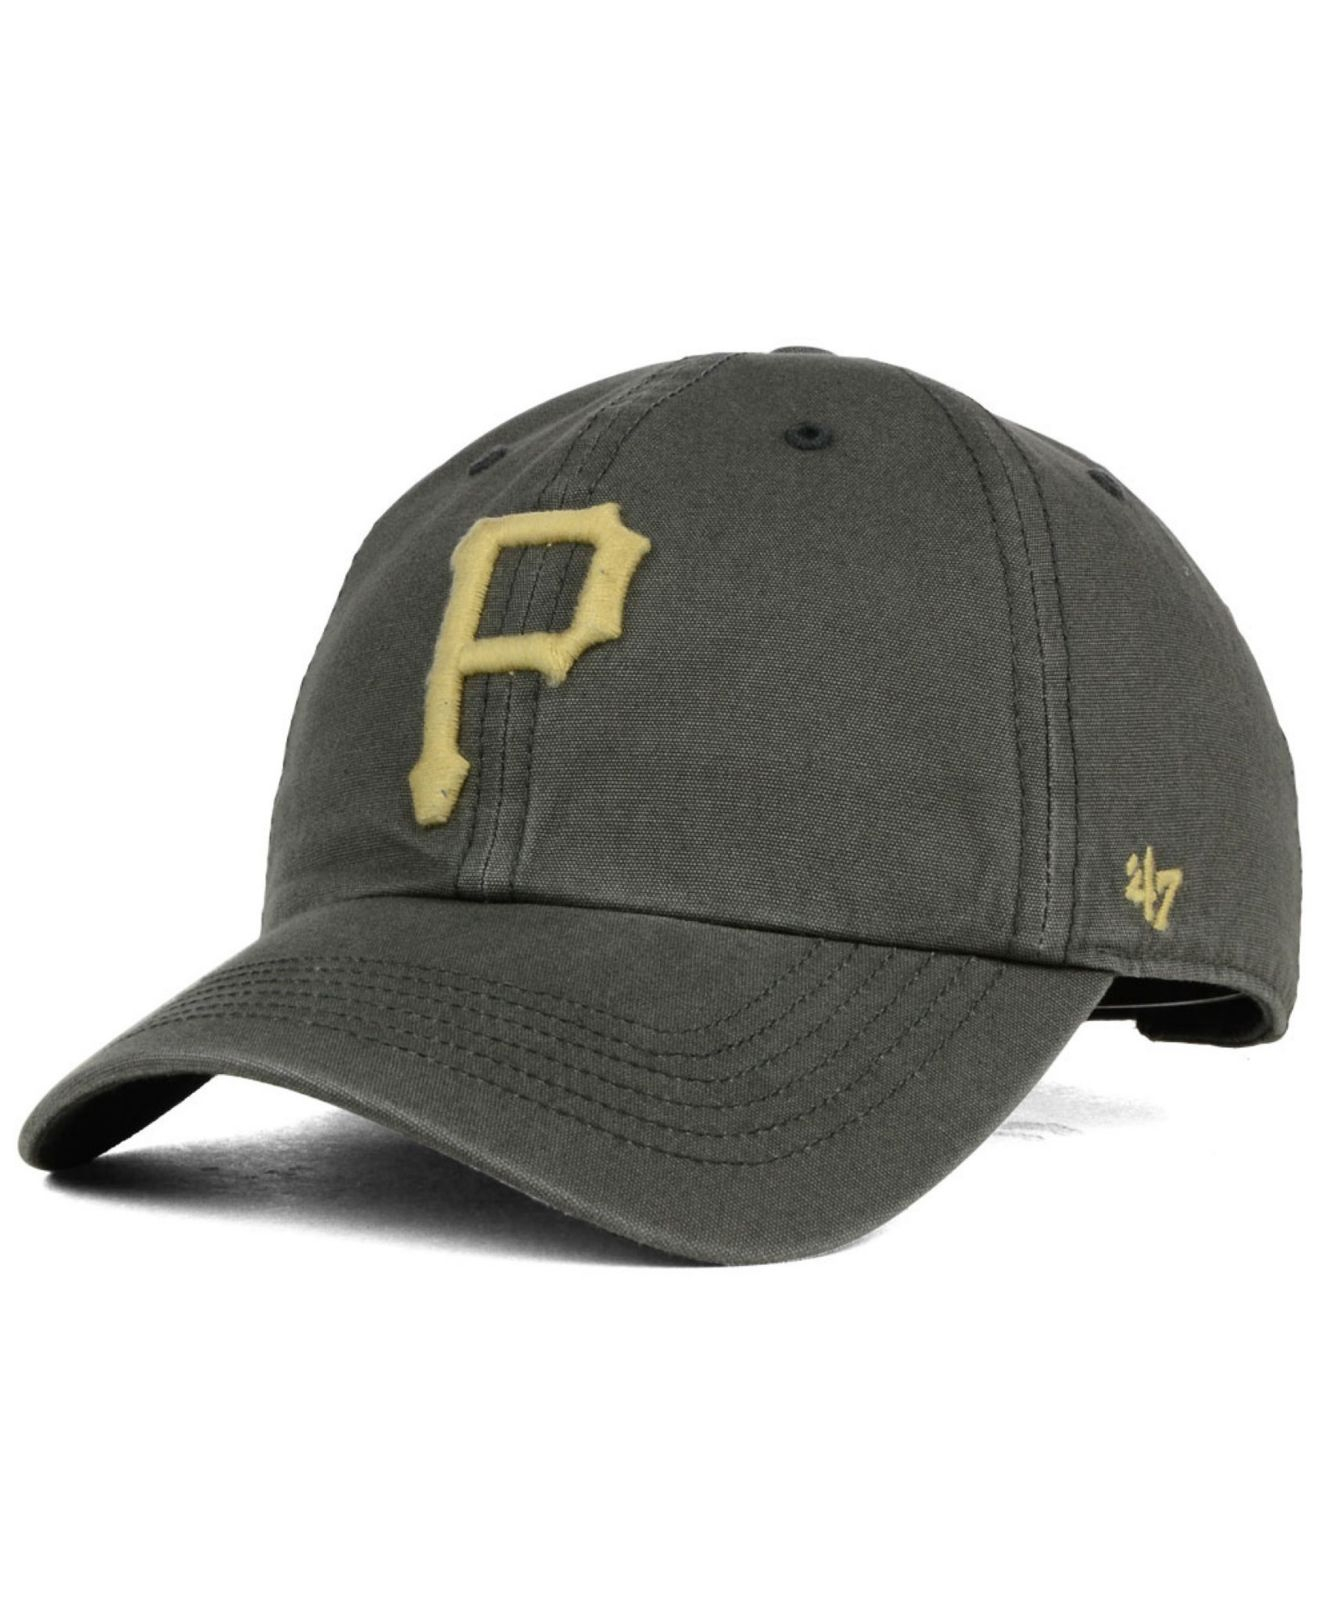 best service 2191a bfe74 store pittsburgh pirates hat 47 prices 44412 1dde9